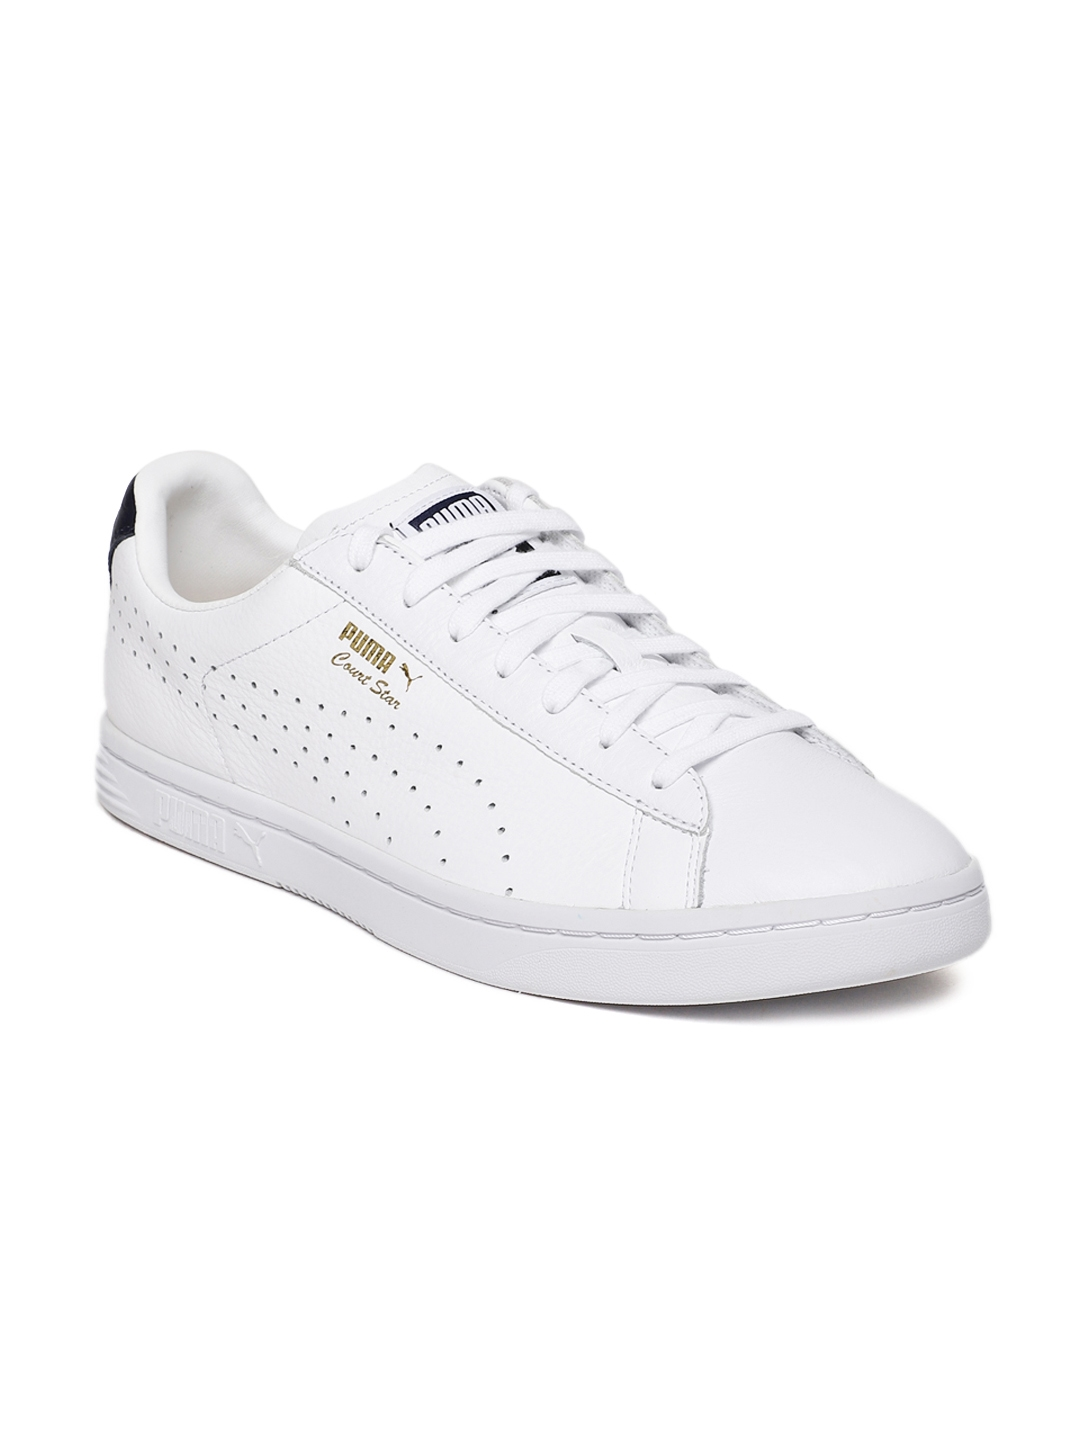 Buy Puma Men White Court Star NM Leather Sneakers - Casual Shoes for ... 05a90c347